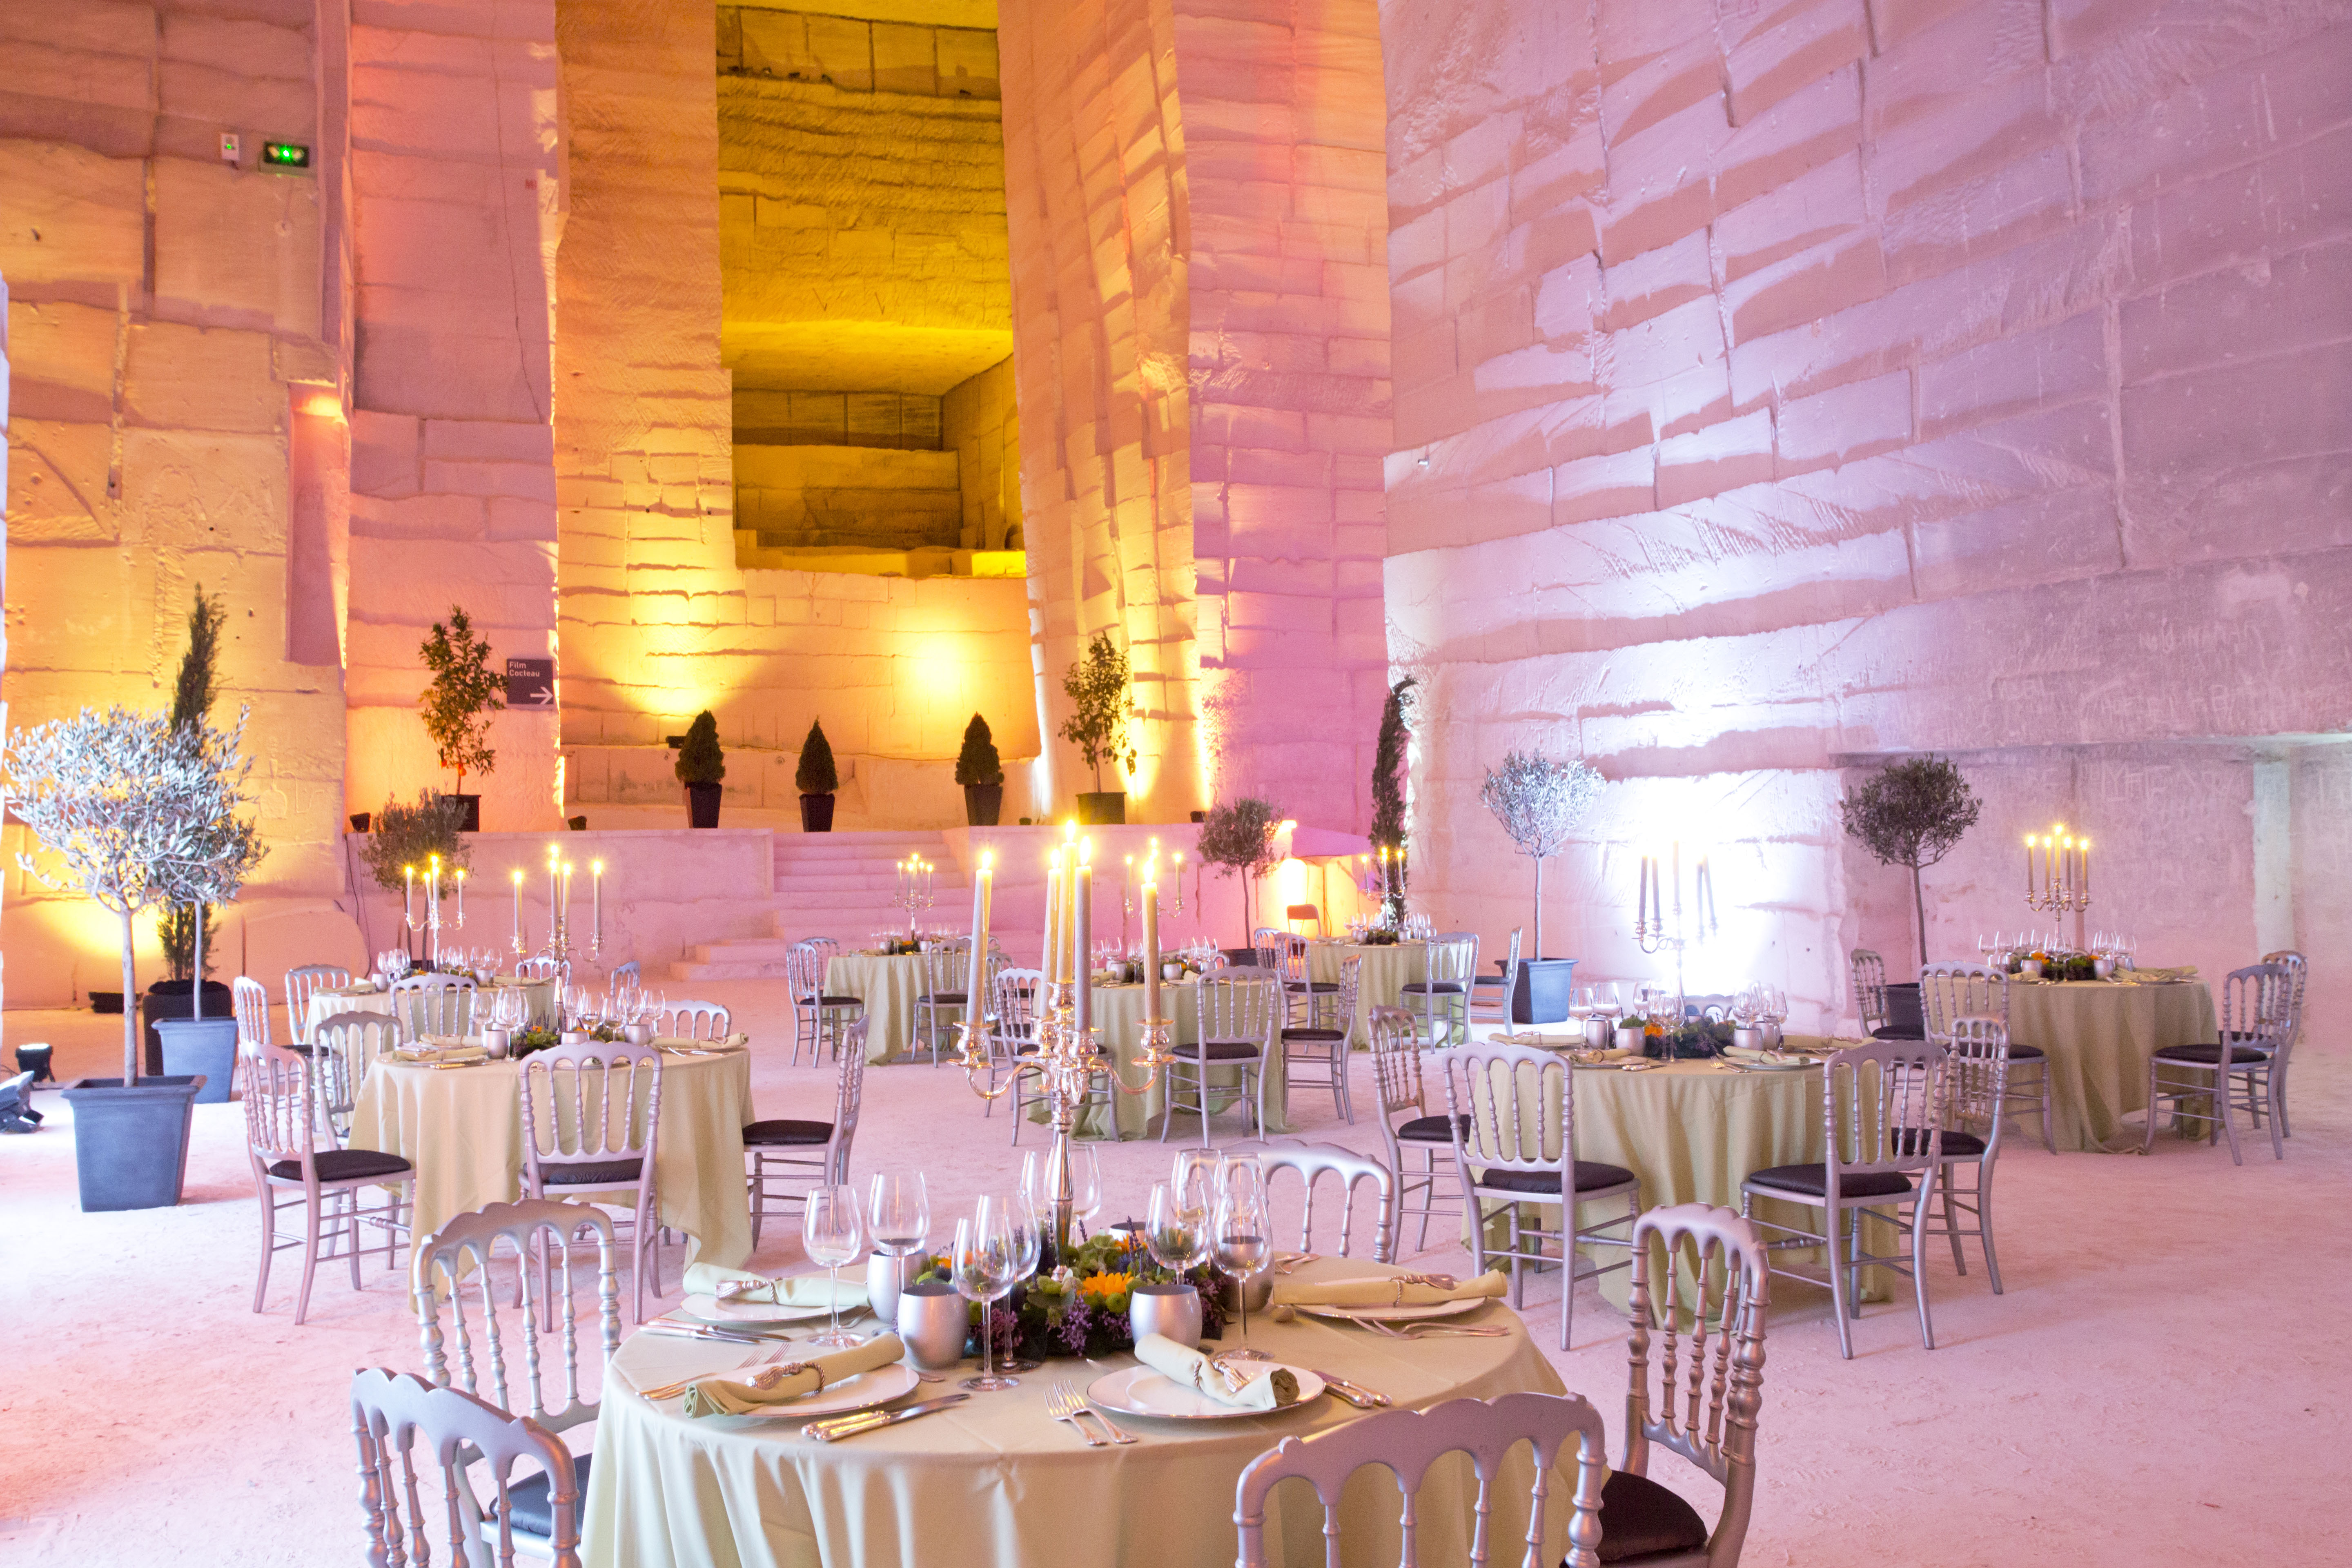 baux de provence_soiree gala_arles_evenement_congres